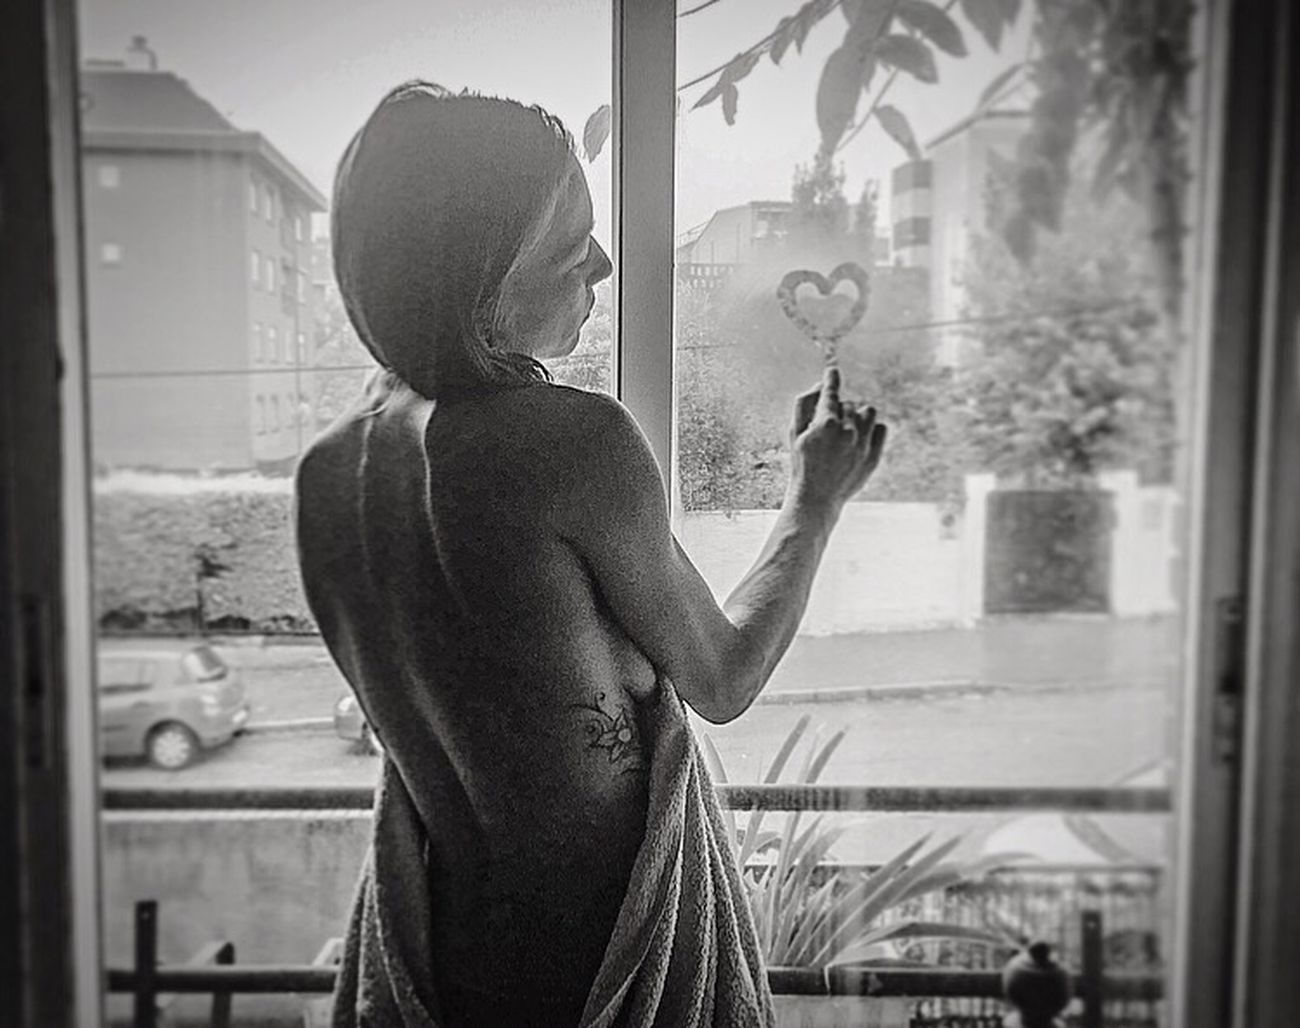 https://m.youtube.com/watch?v=_zPlr-o-YEQ Looking Through Window Light And Reflection Blackandwhite Black And White Portrait Youandme Rainy Days Autumn Heart Tattoo Body Love From My Point Of View Saturday Weekend Relaxing Window Imagination Taking Photos Person Feelings Light And Shadow Myuniquestyle Monochrome Window View